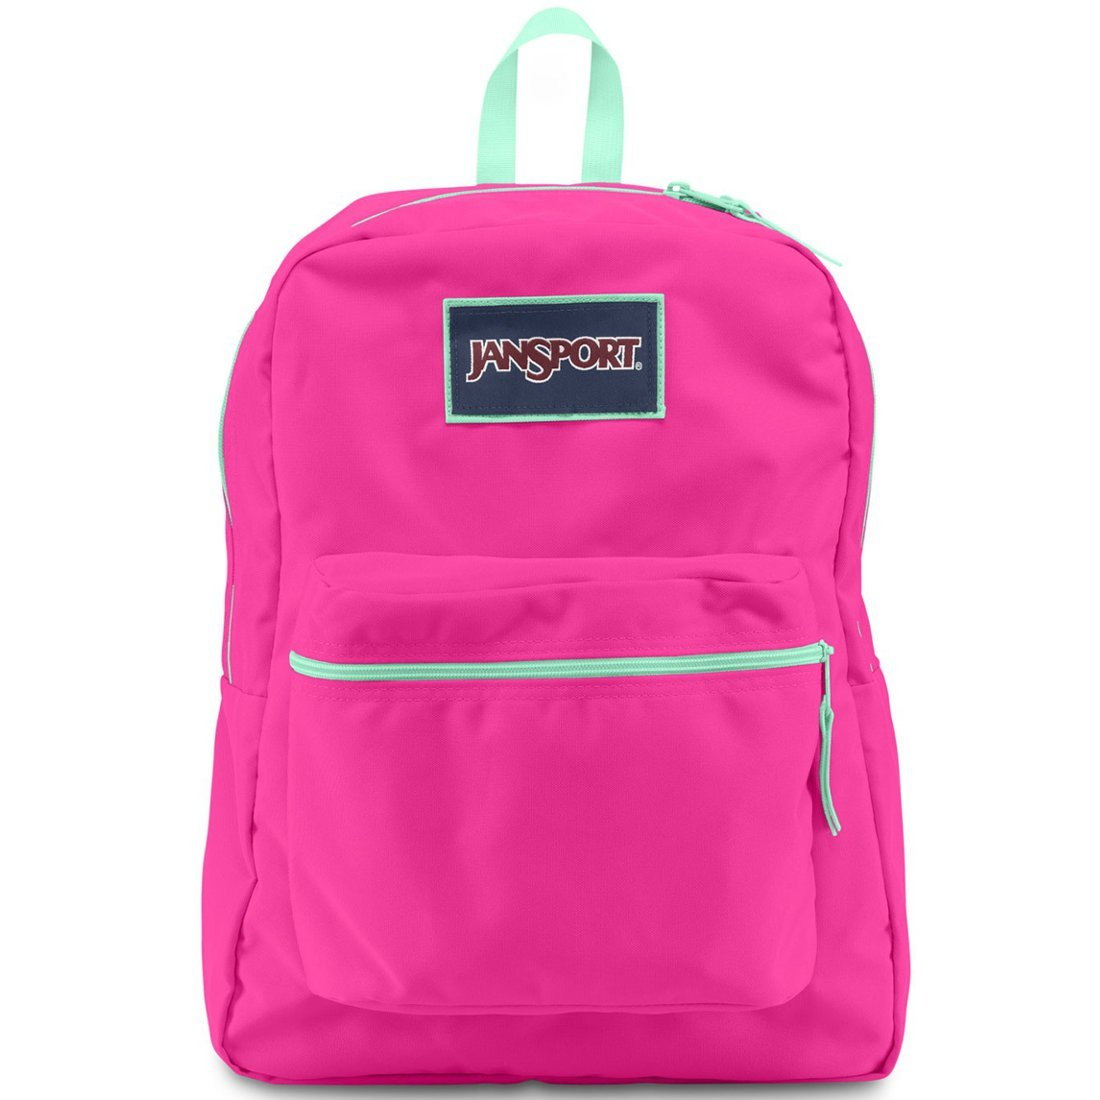 Jansport Backpacks Sale UqRkZrM7